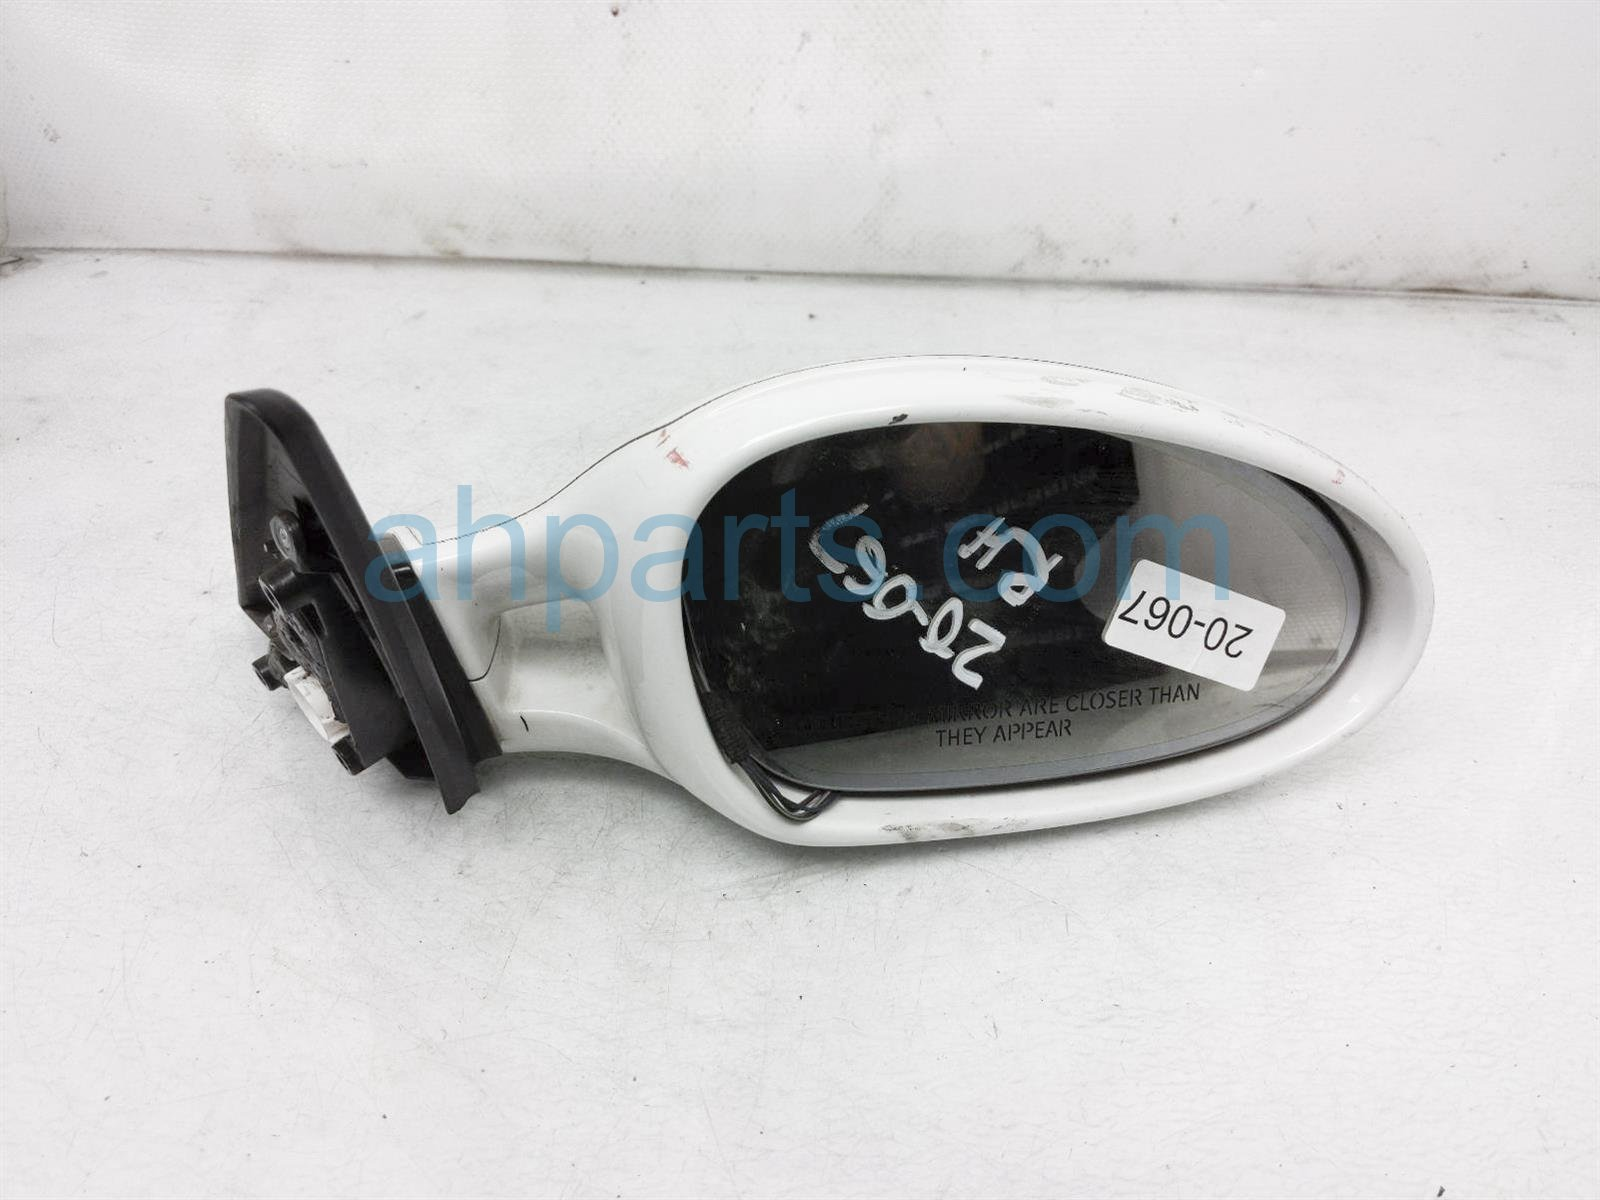 2011 Porsche Cayman Rear Passenger Side View Mirror   White 997 731 620 02 G2L Replacement